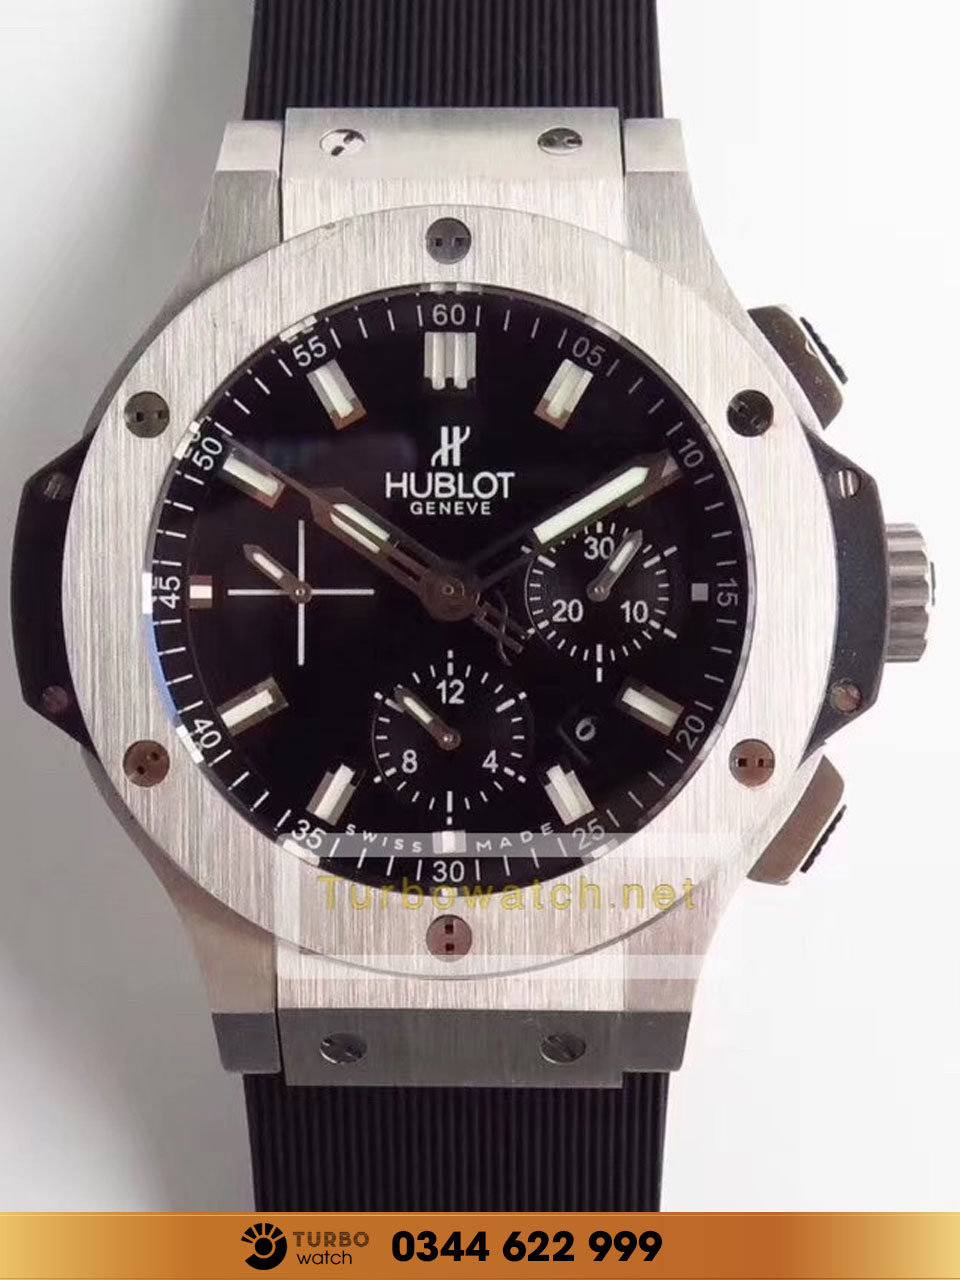 Hublot Big Bang Steel 44mm 301.SX.1170.RX FAKE 1-1 SIÊU CẤP